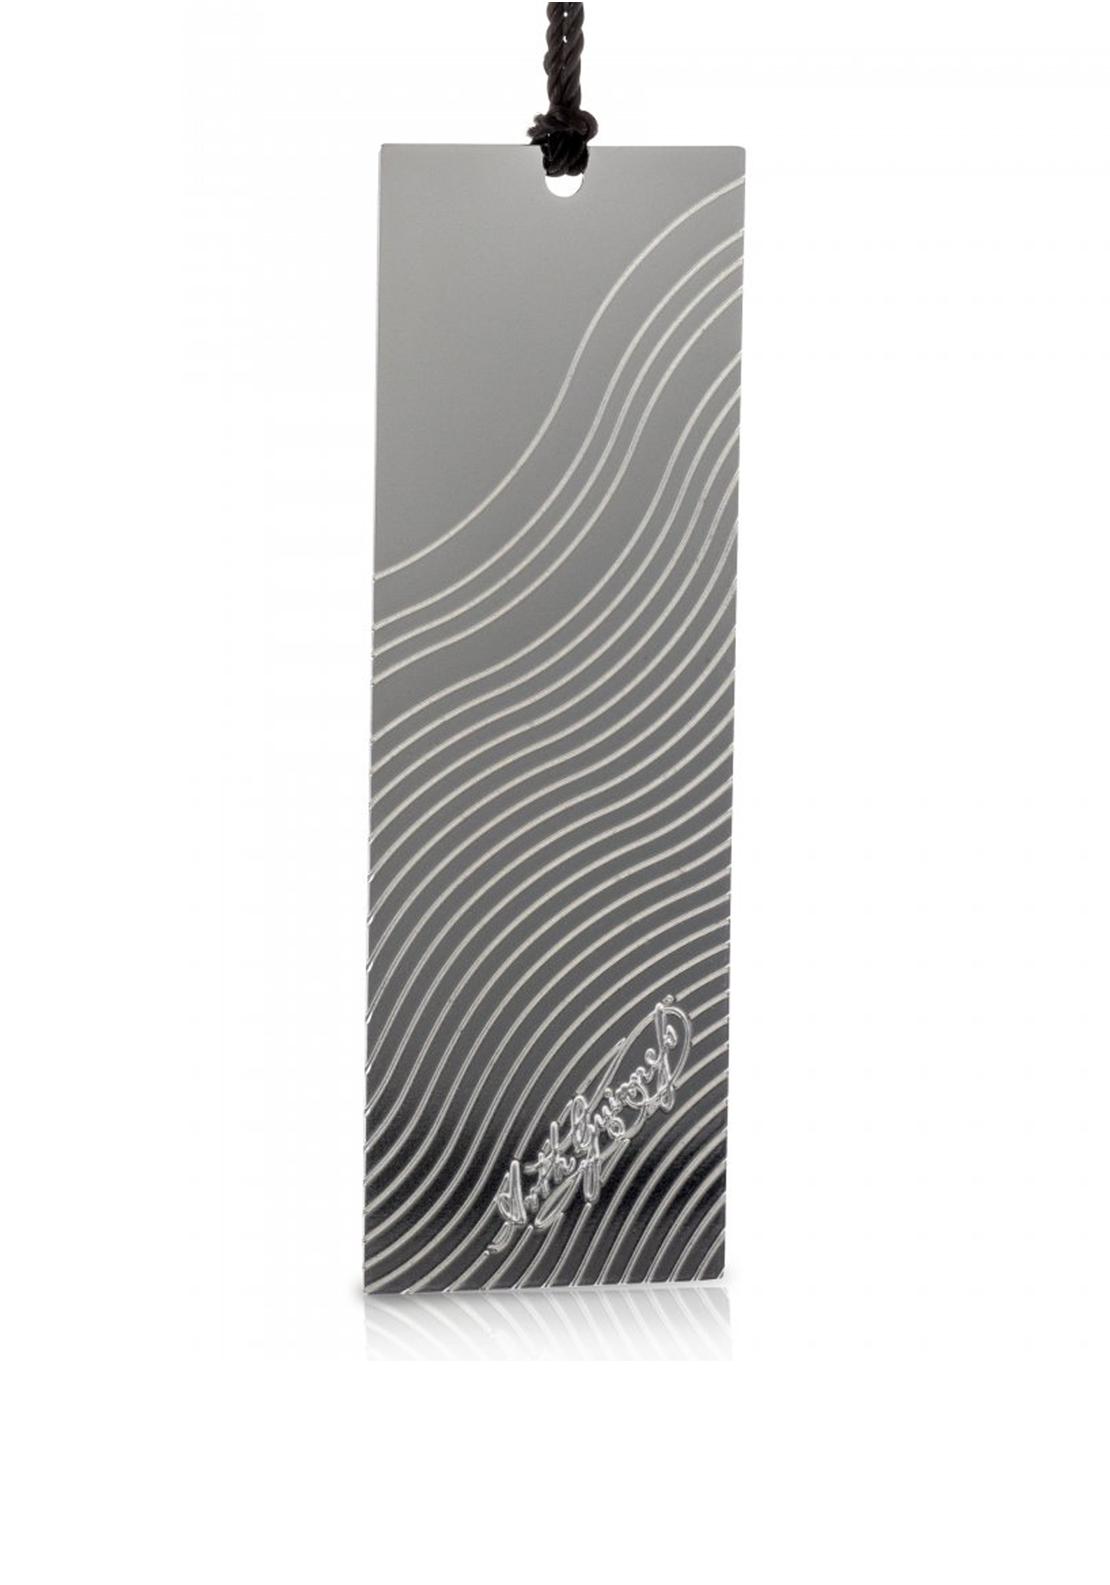 Guinness Newbridge Wave Bookmark with Tassel